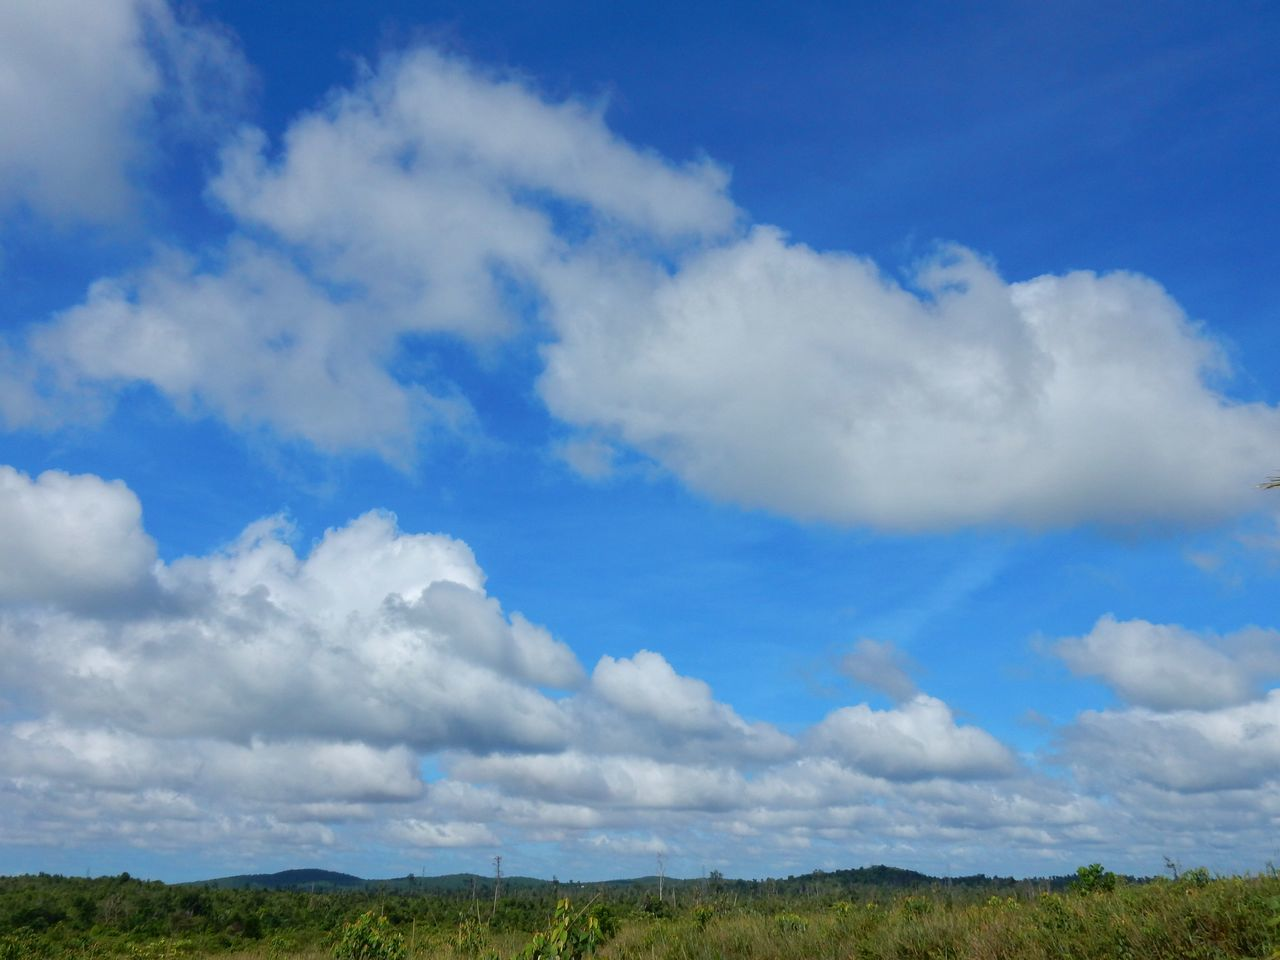 Cloud - Sky Blue Sky Landscape Cloudscape Plain Grass Outdoors Nature No People Day Morning Morning Light Morning View